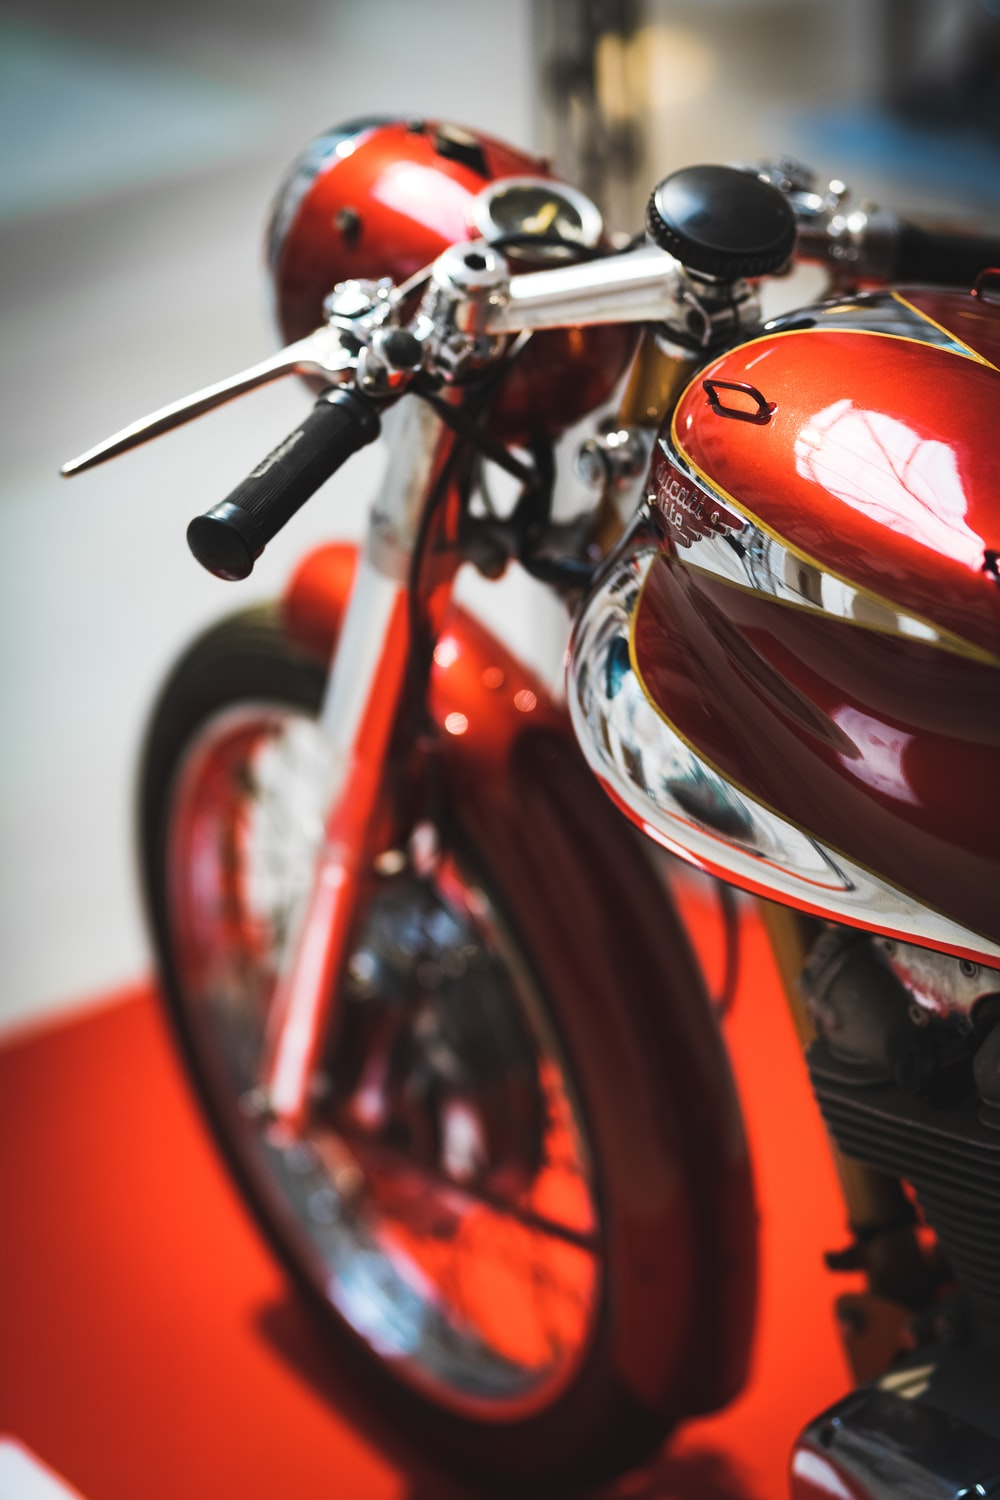 motorcycle on red carpet